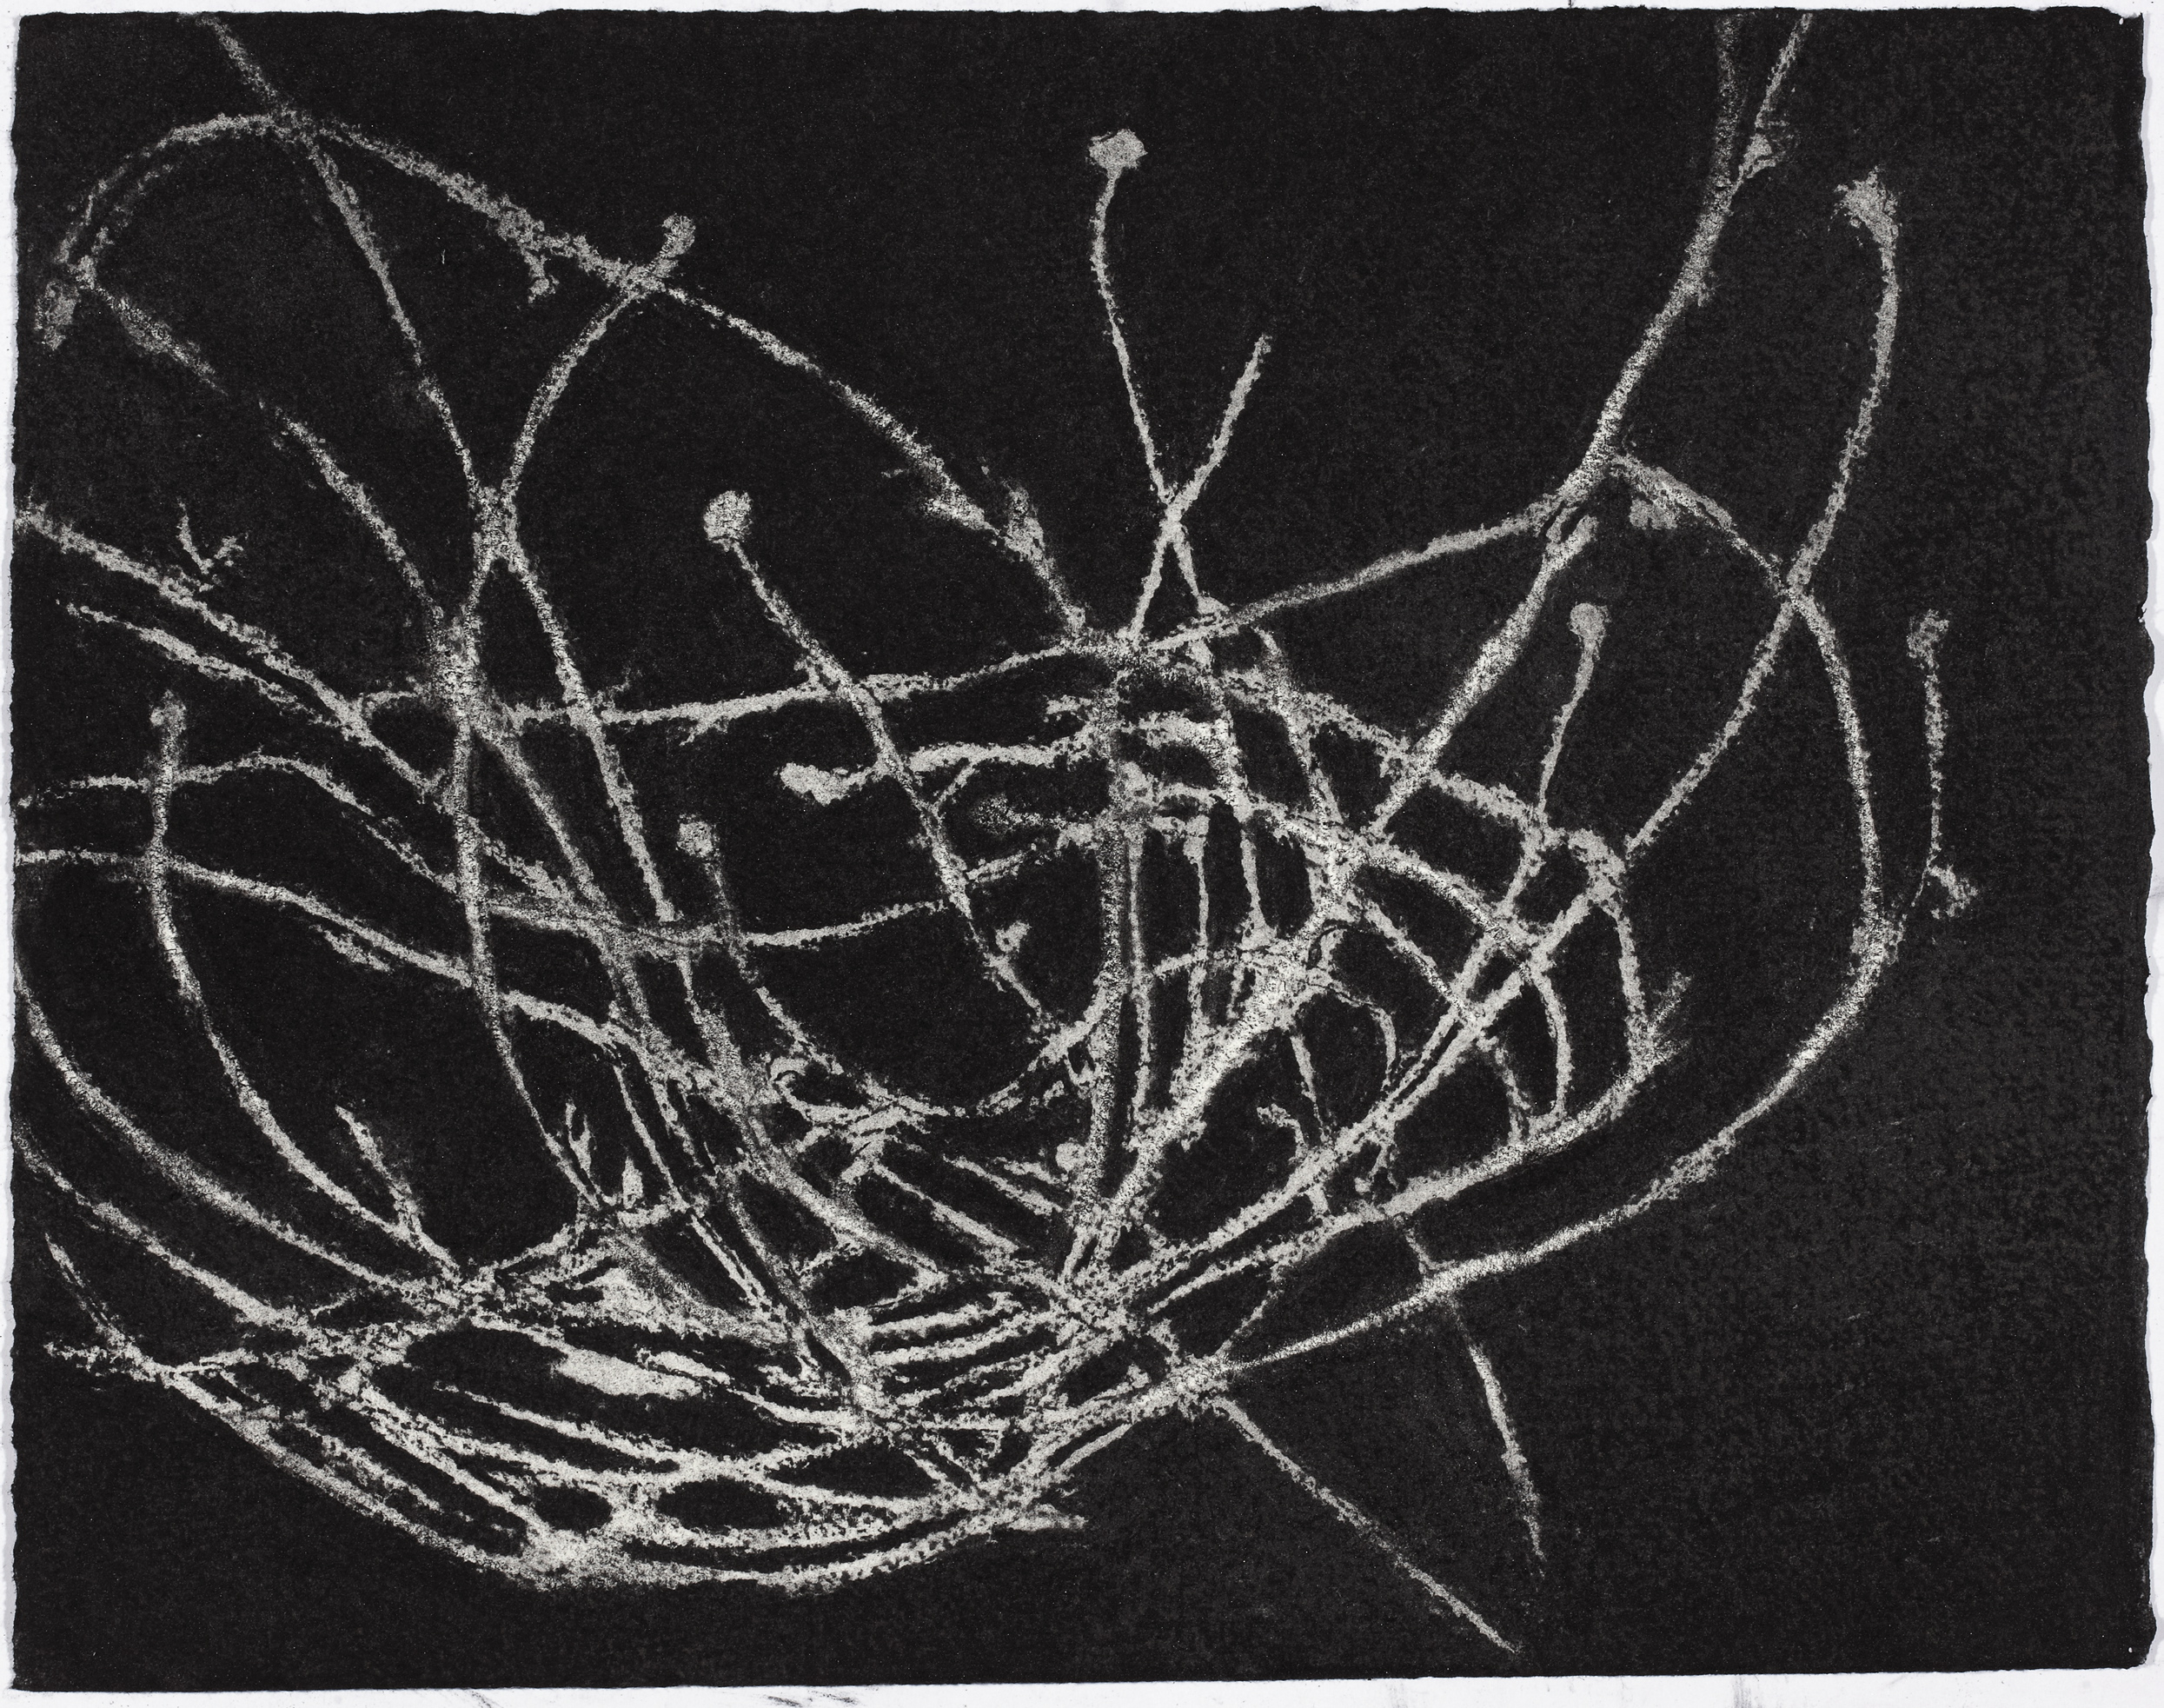 NSW desert plant (detail), 2011, charcoal on white paper, 25.6x33.0cm